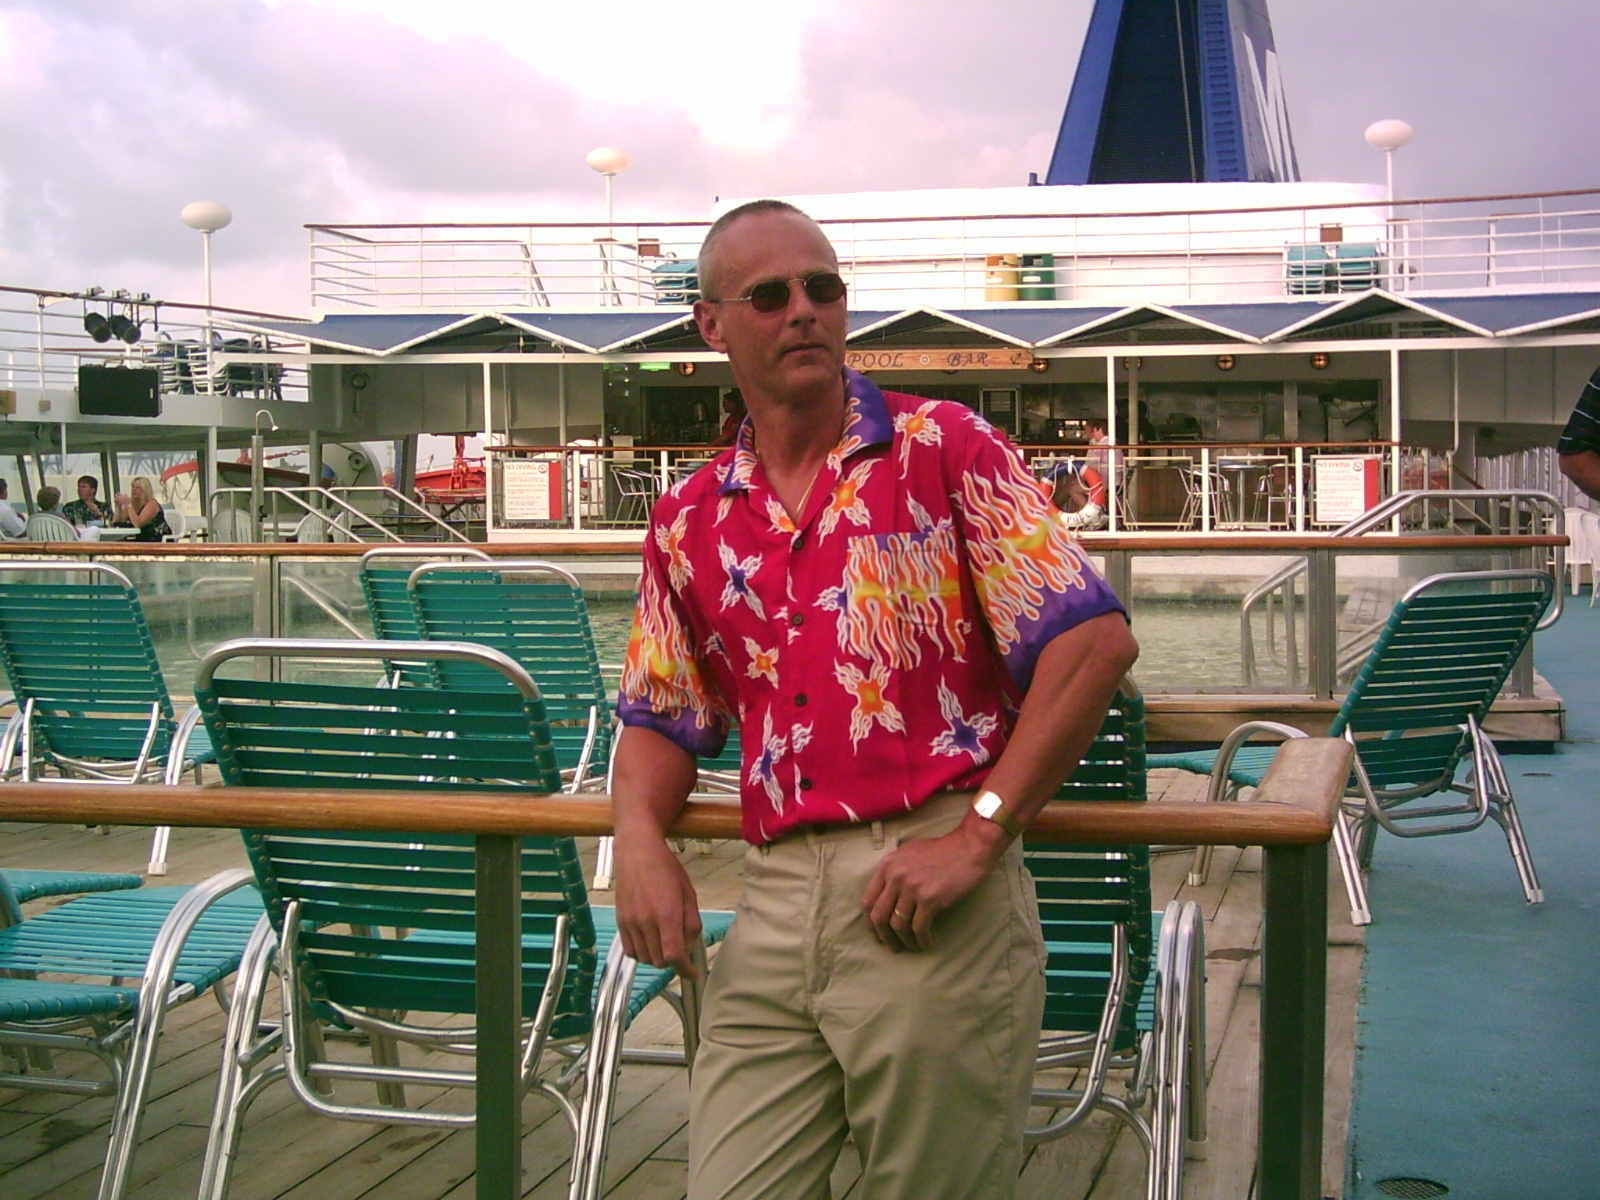 Canary Islands Cruise 2004 - Neil showing his love for bright shirts!